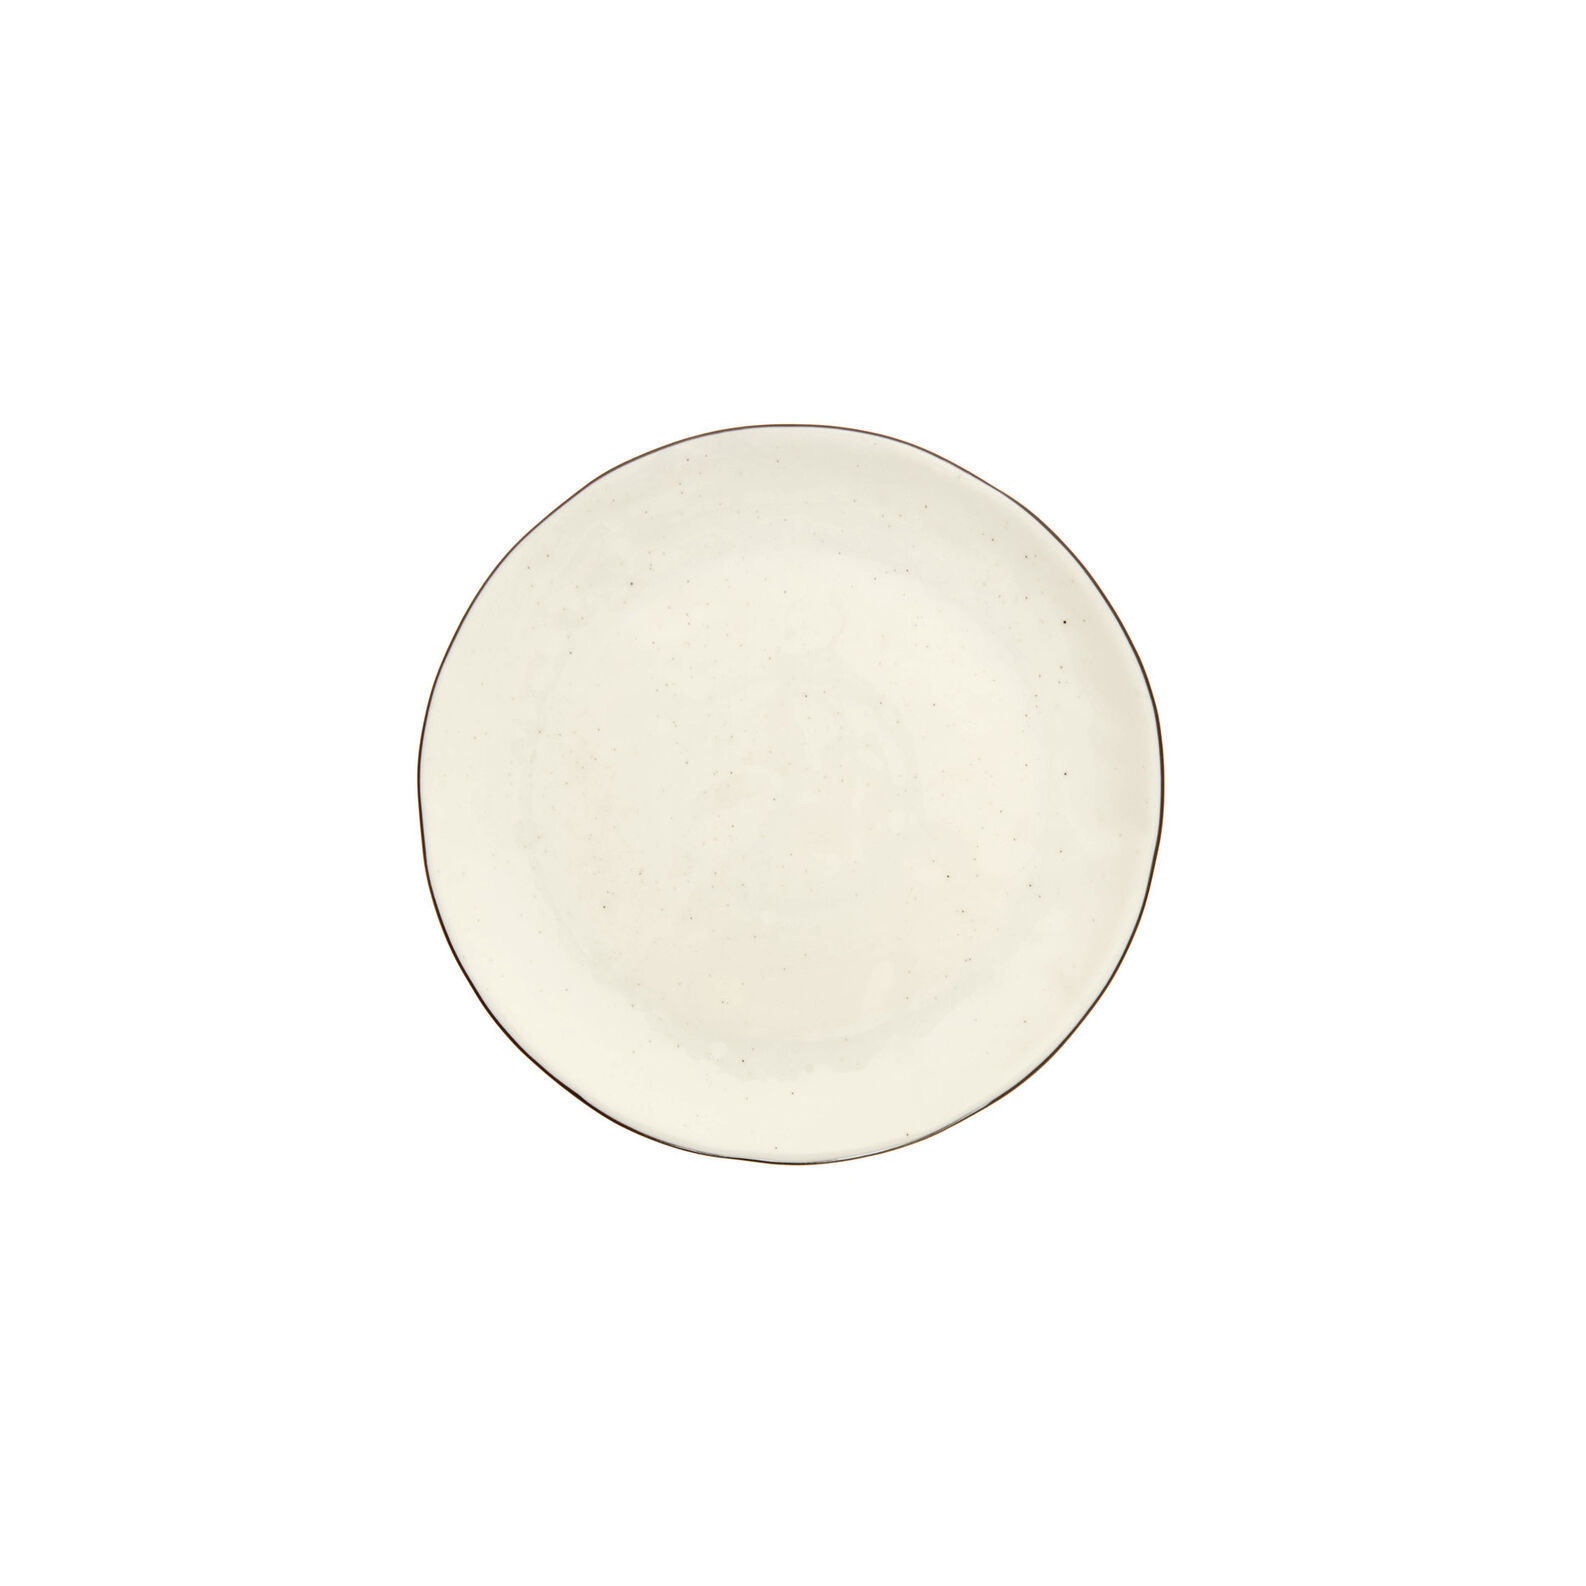 Ginevra side plate in porcelain